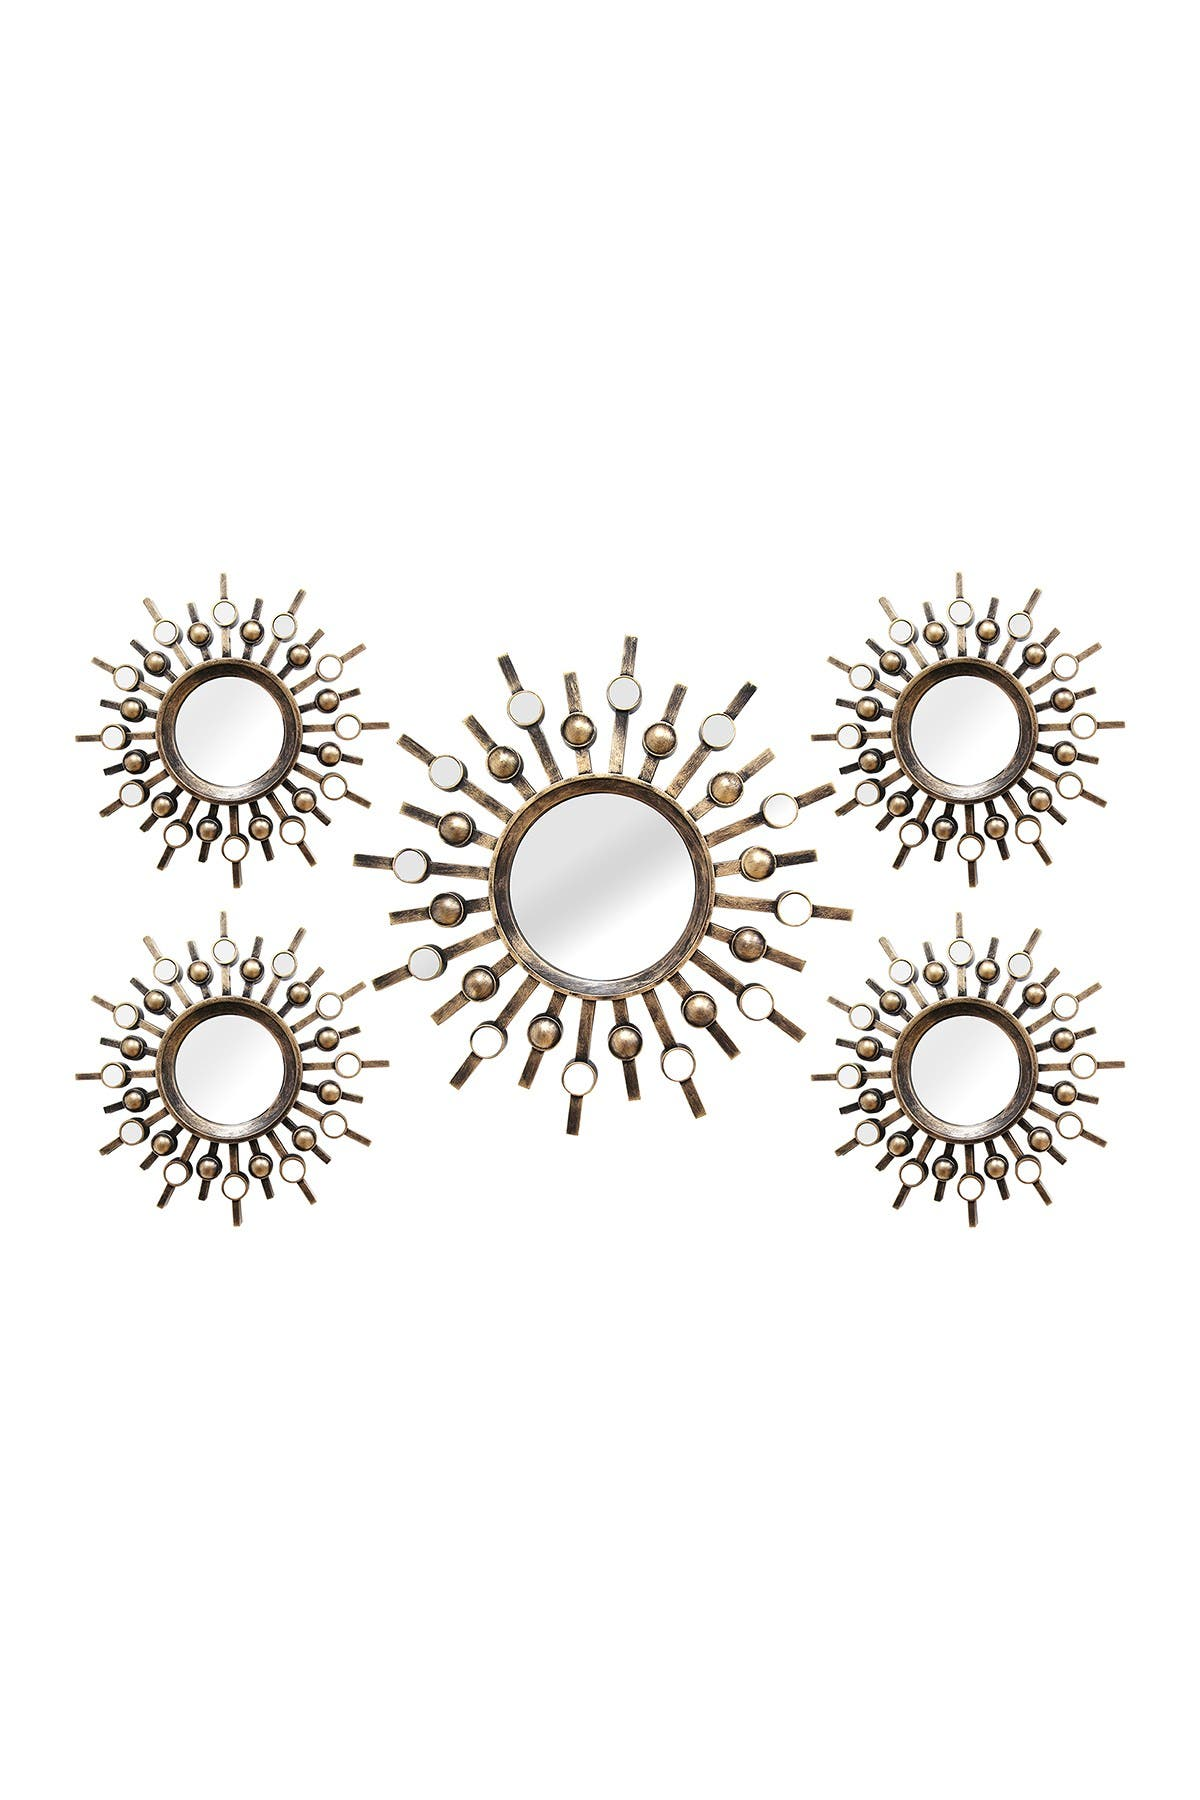 Image of Stratton Home Bronze Burst Wall Mirrors - Set of 5